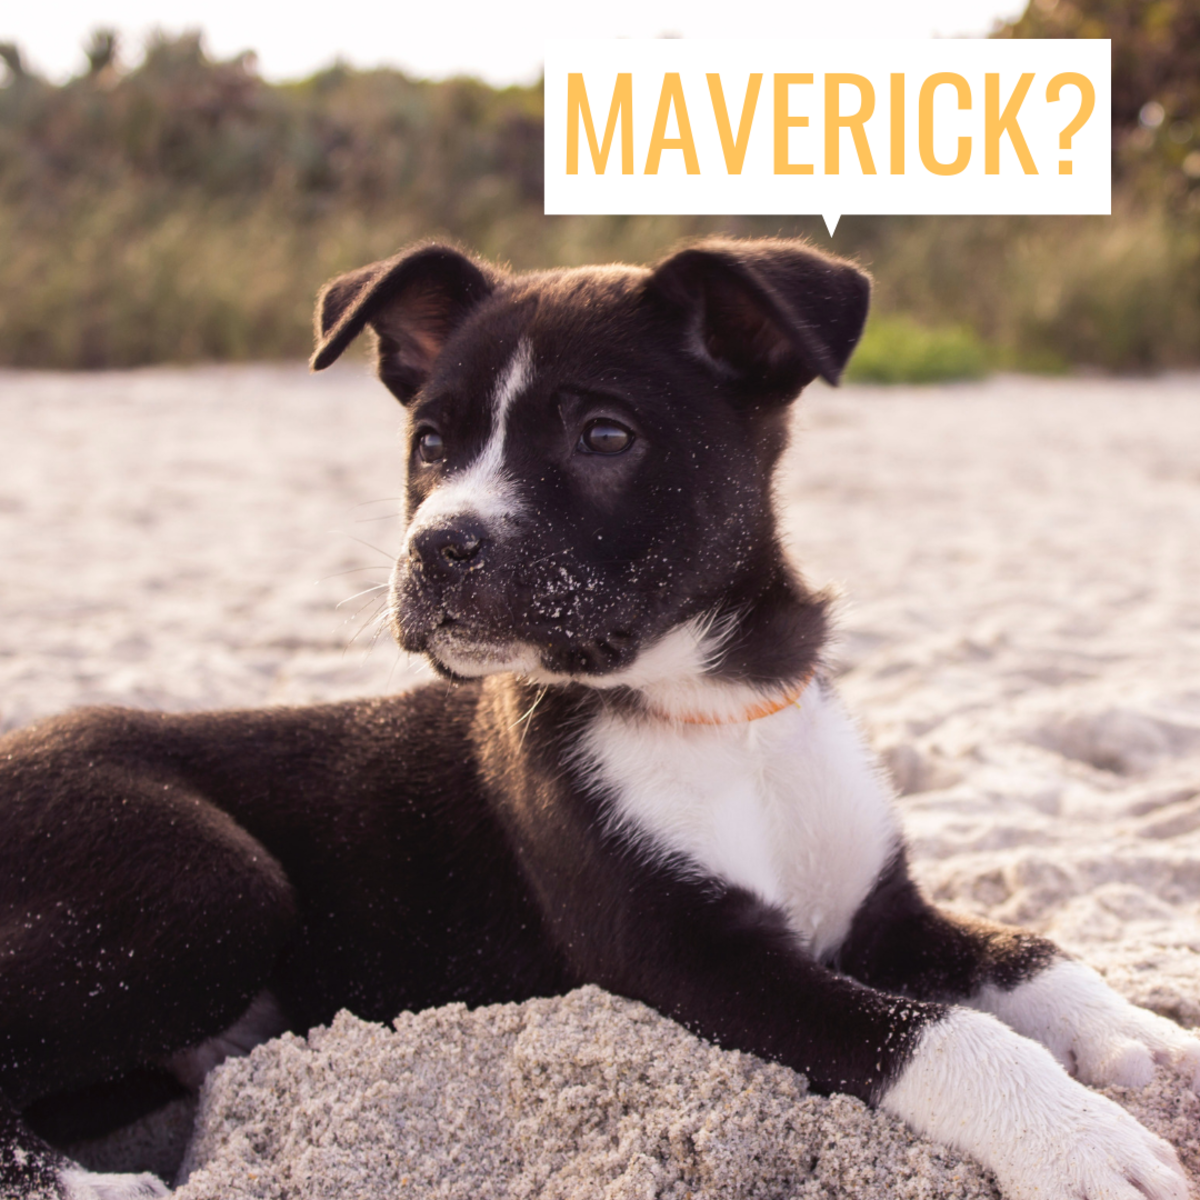 Maybe your 2-month-old puppy looks like a Magic, a Maverick, or a Mickey?